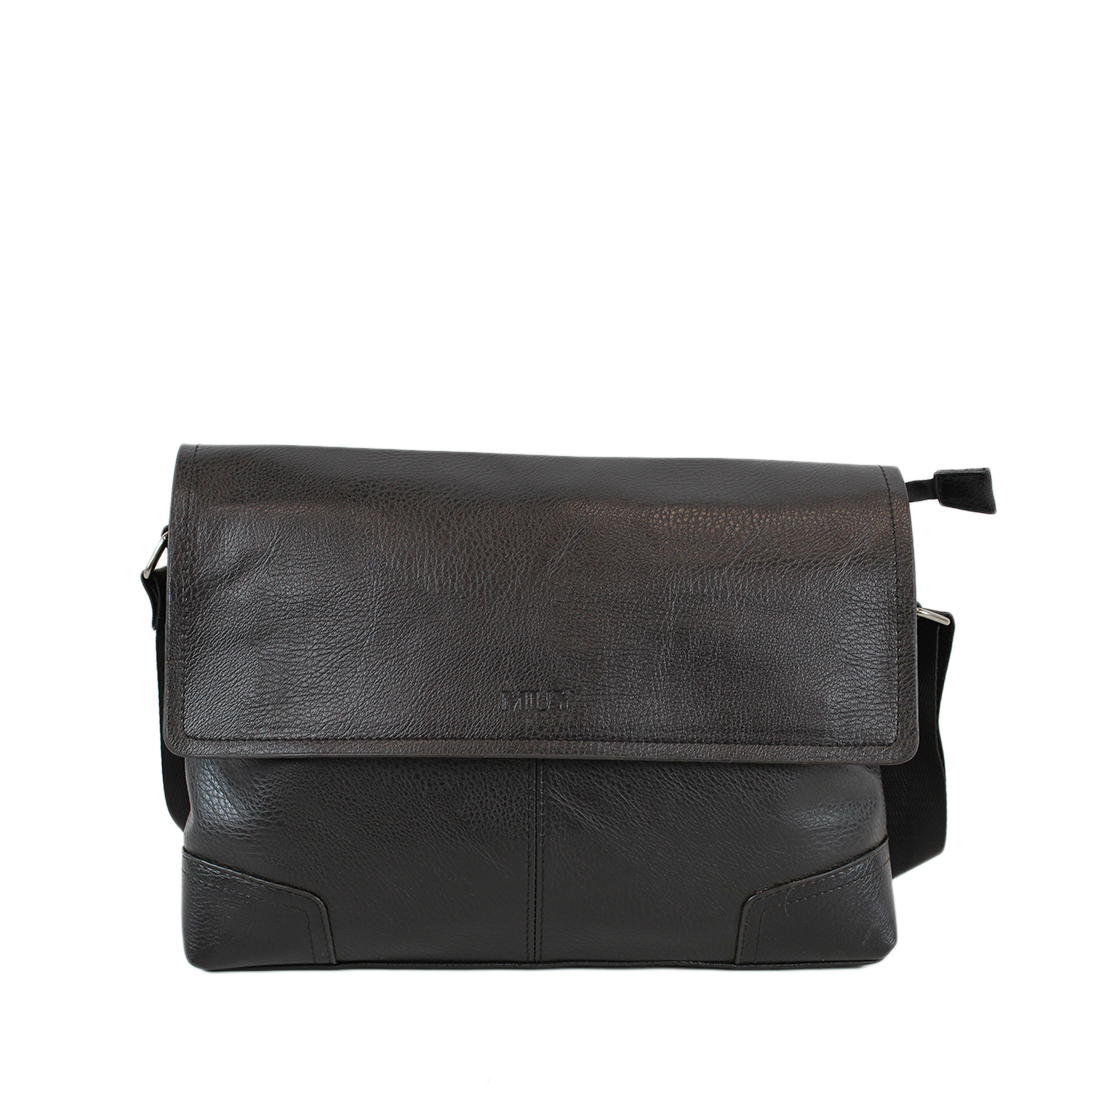 Real Leather - Rectangle style